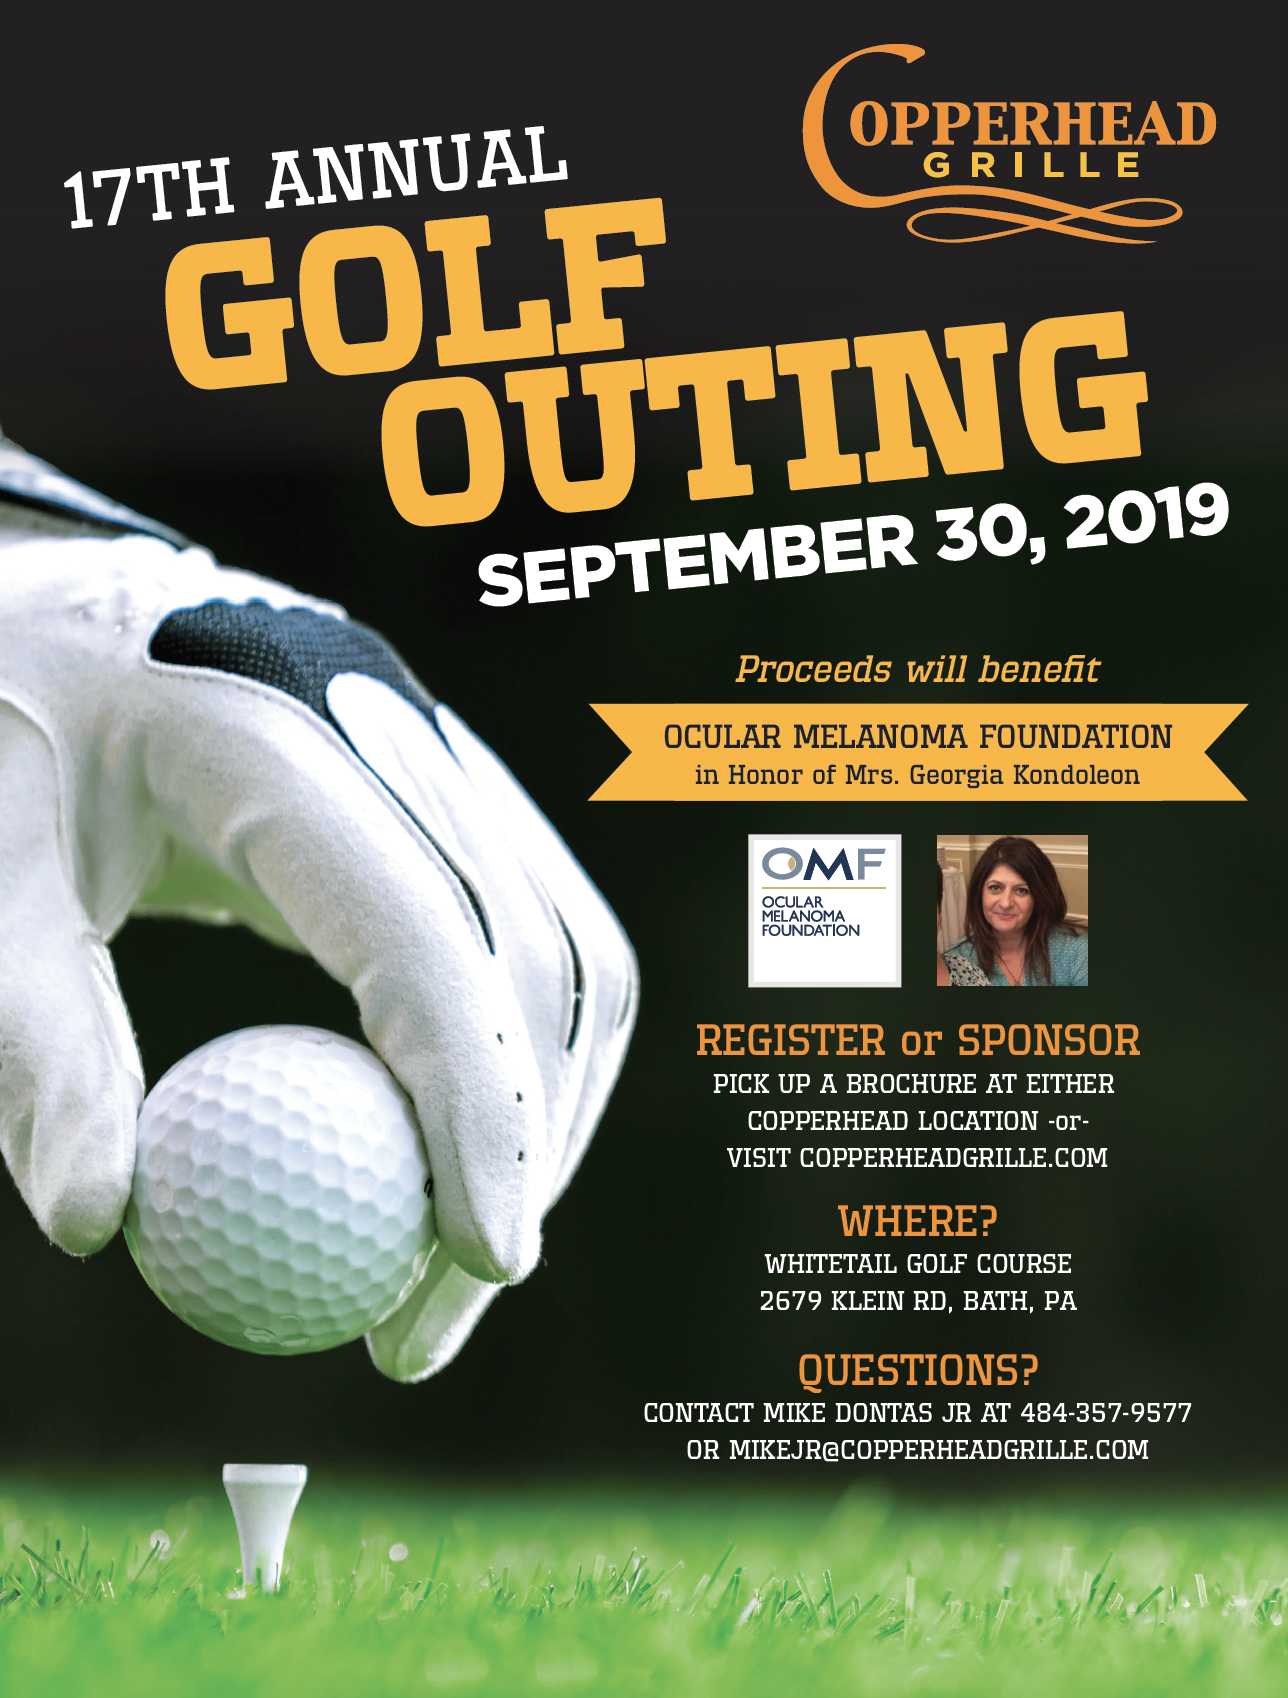 Copperhead grille golf outing